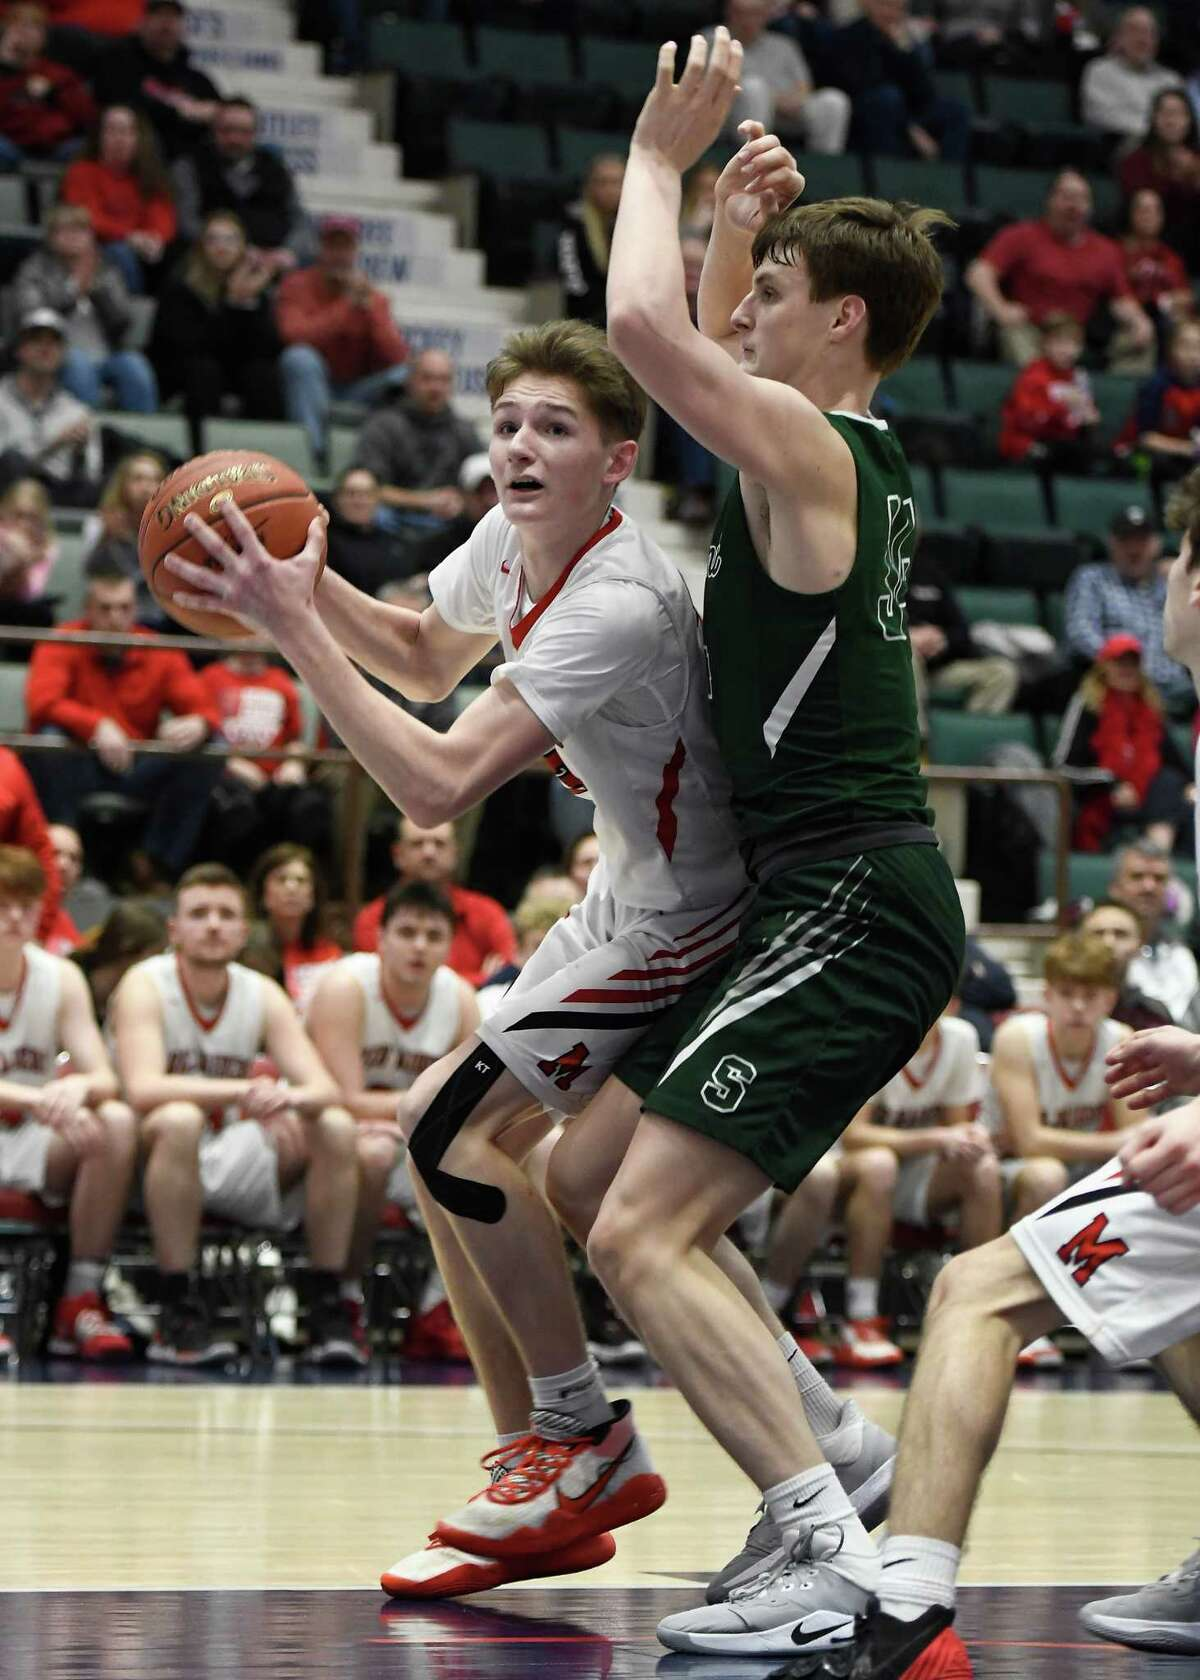 Schalmont's Shane O'Dell pressures Mechanicville's Josh Germain during the Class B Sectional Final at Cool Insuring Arena in Glens Falls, N.Y., on Friday, Mar. 6, 2020. (Jenn March, Special to the Times Union)